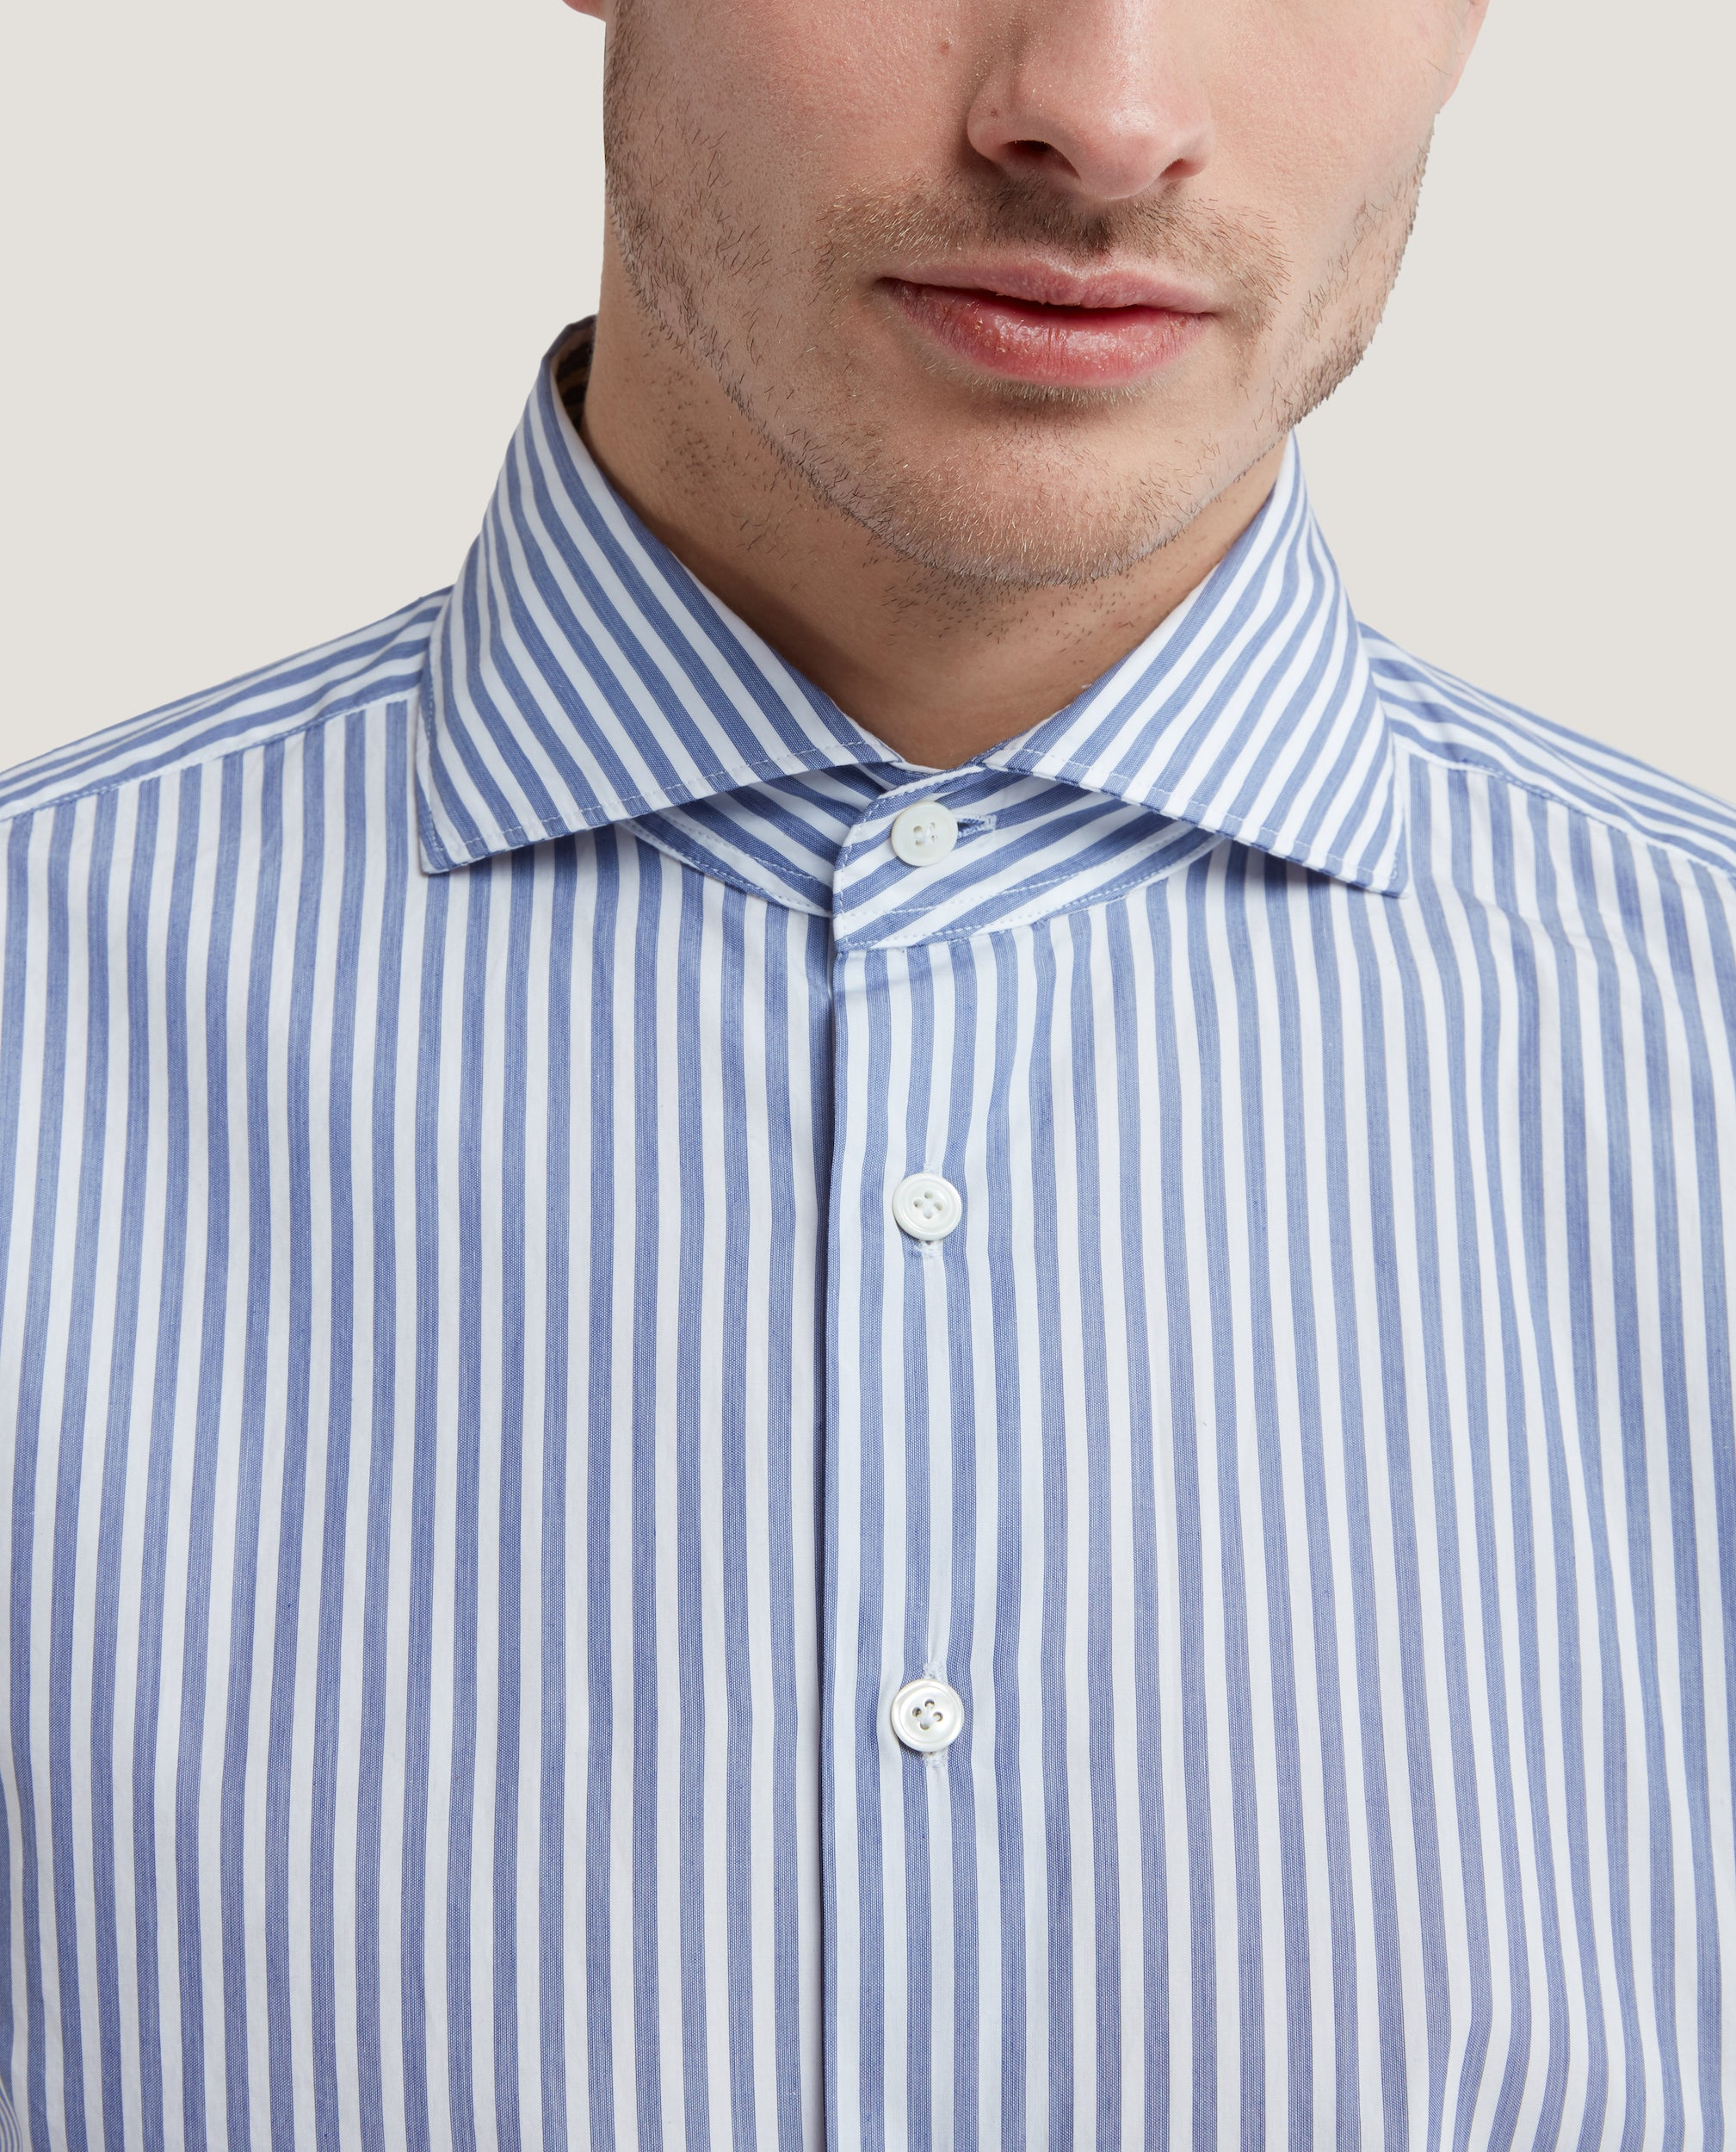 EVRON Slim fit shirt | Poplin stripe